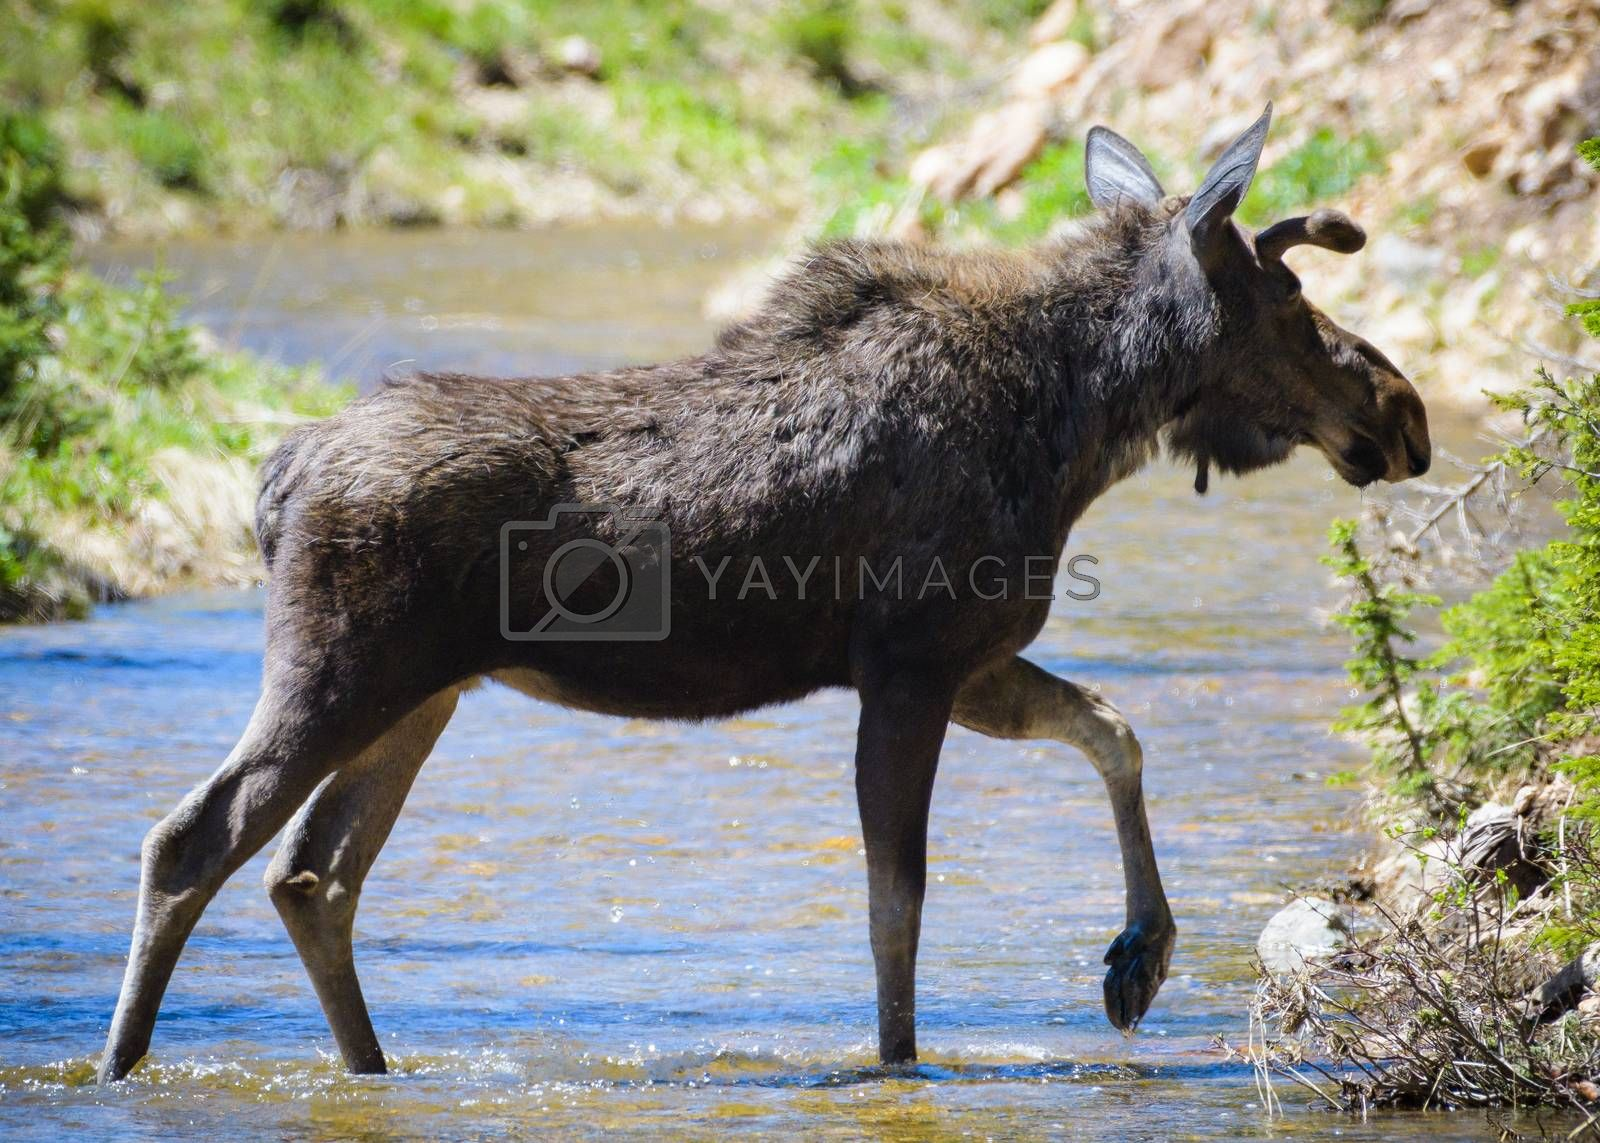 Bull Moose Moving Across a Stream. Colorado Moose Living in the Wild